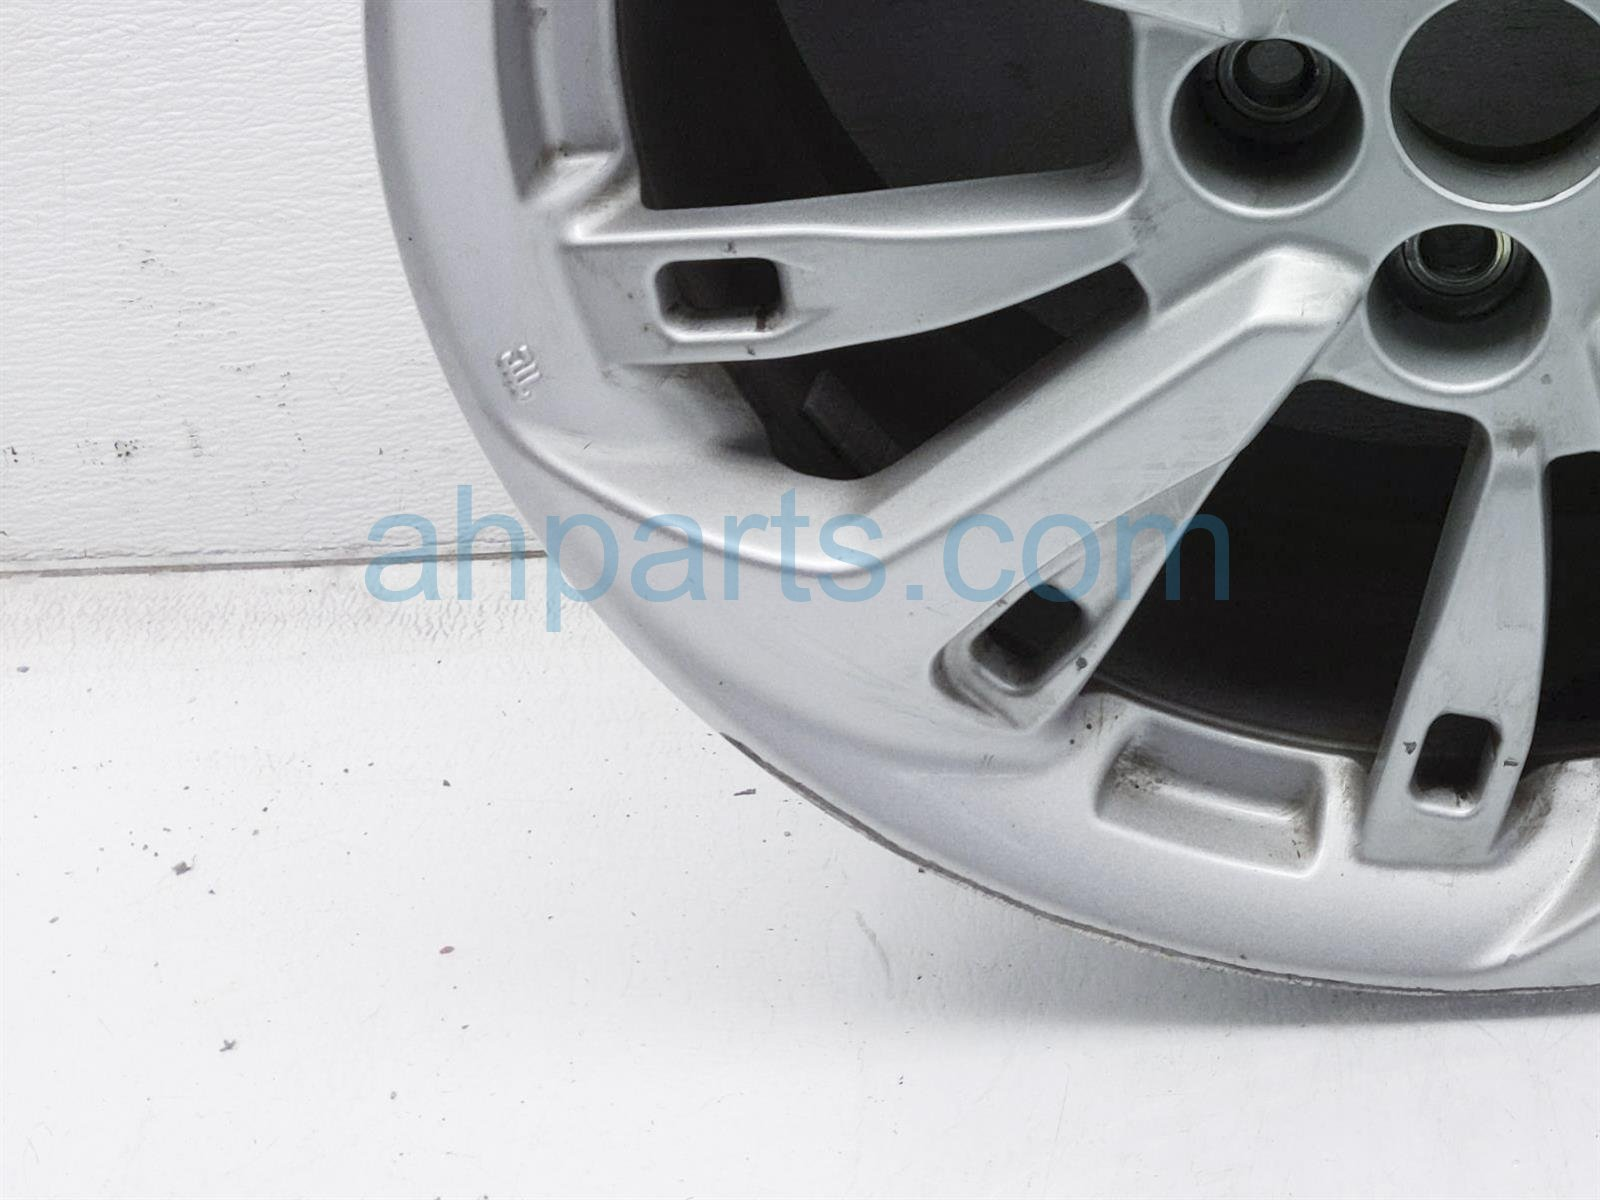 Sold 2018 Honda Clarity Rear Driver Wheel/rim   Curb Rash 08W18 TRT 100 Replacement